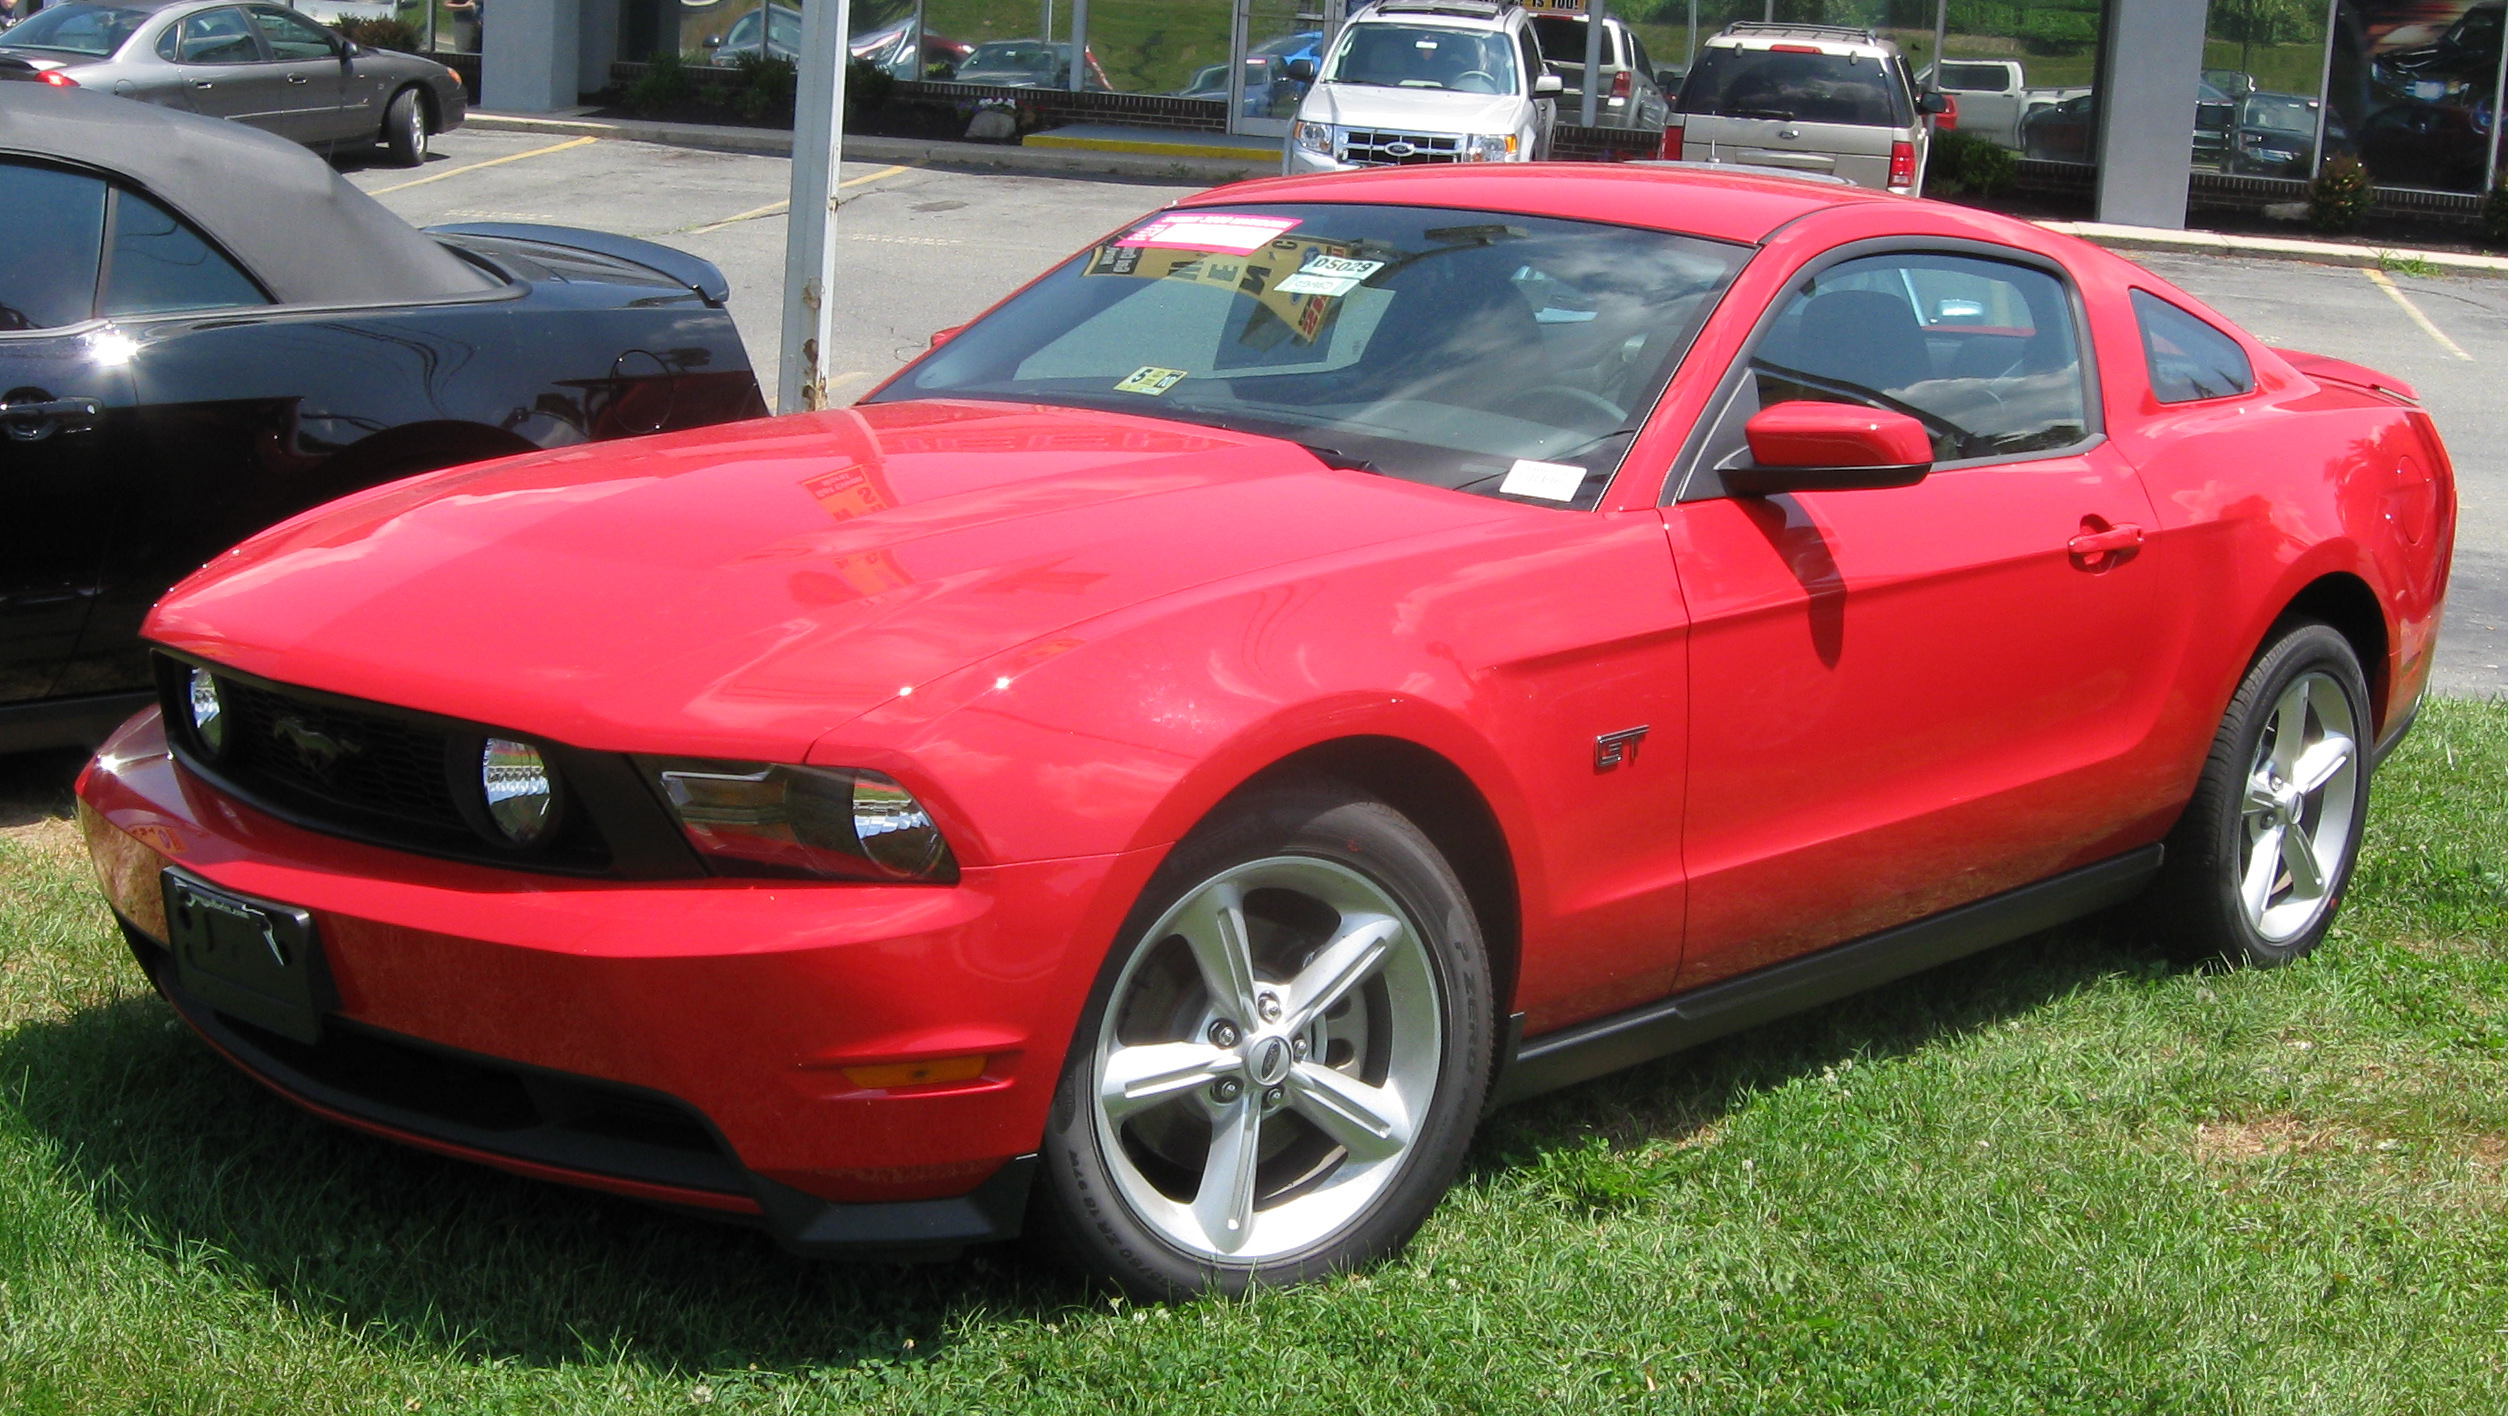 2004 Ford Mustang #17